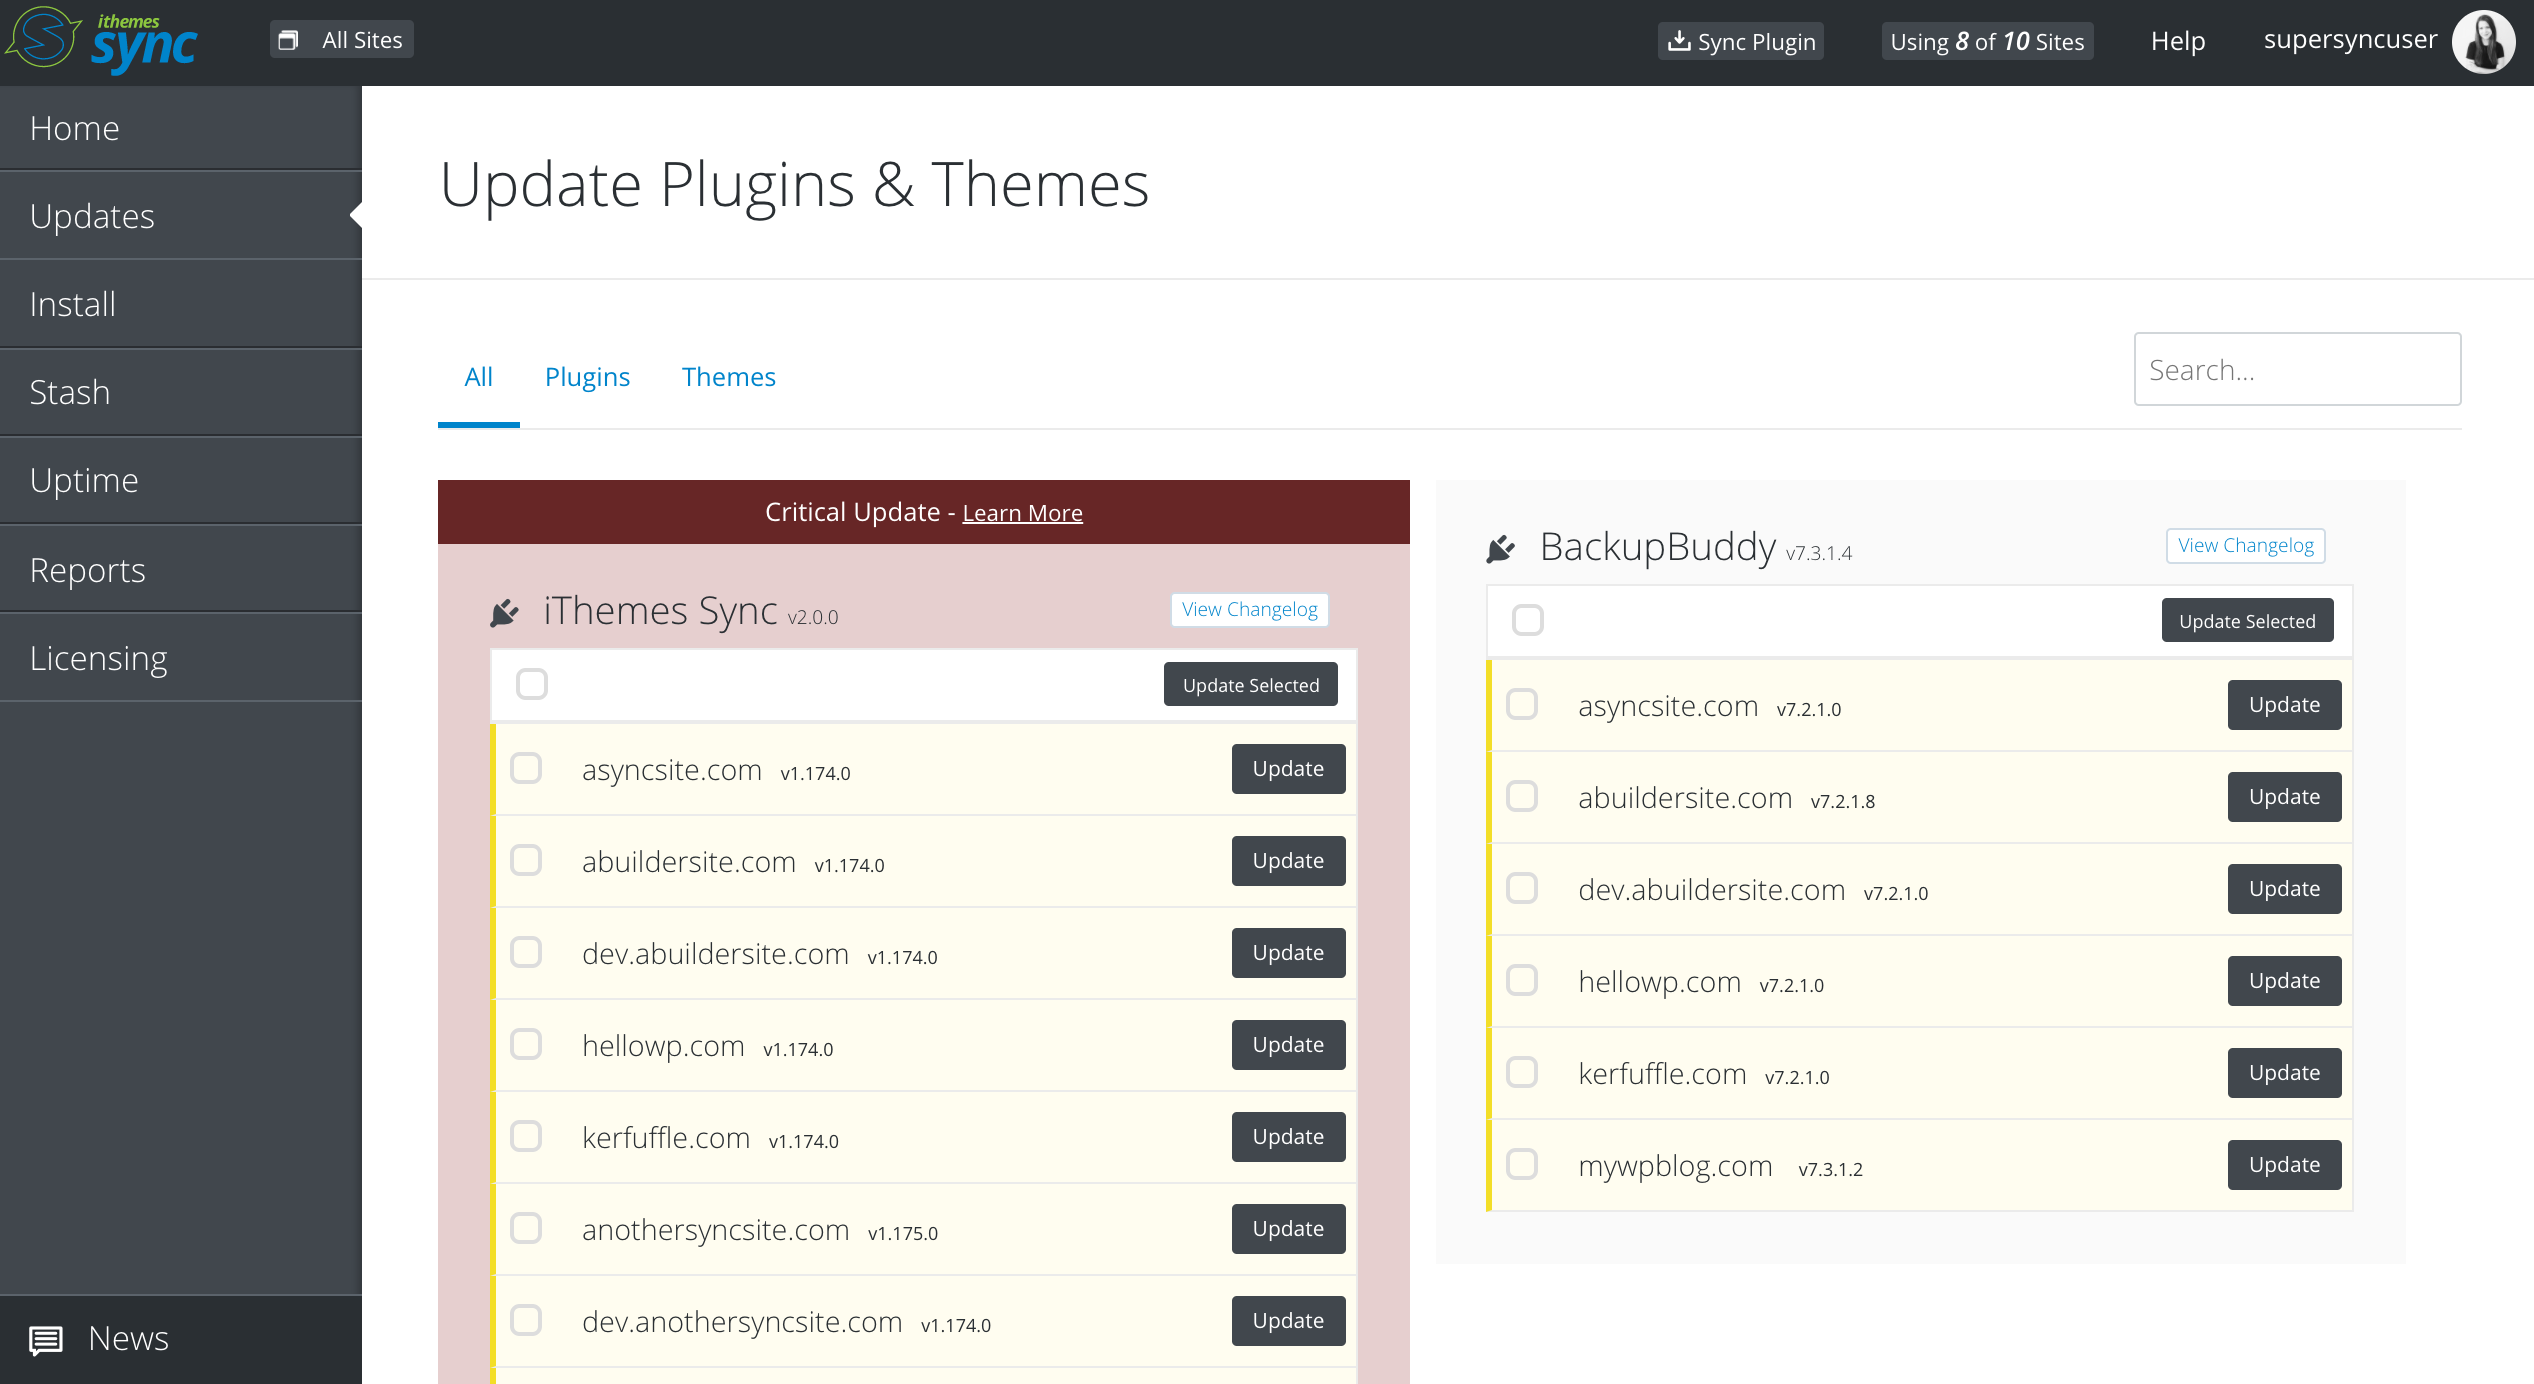 Updates view with listing of themes/plugins and available site updates